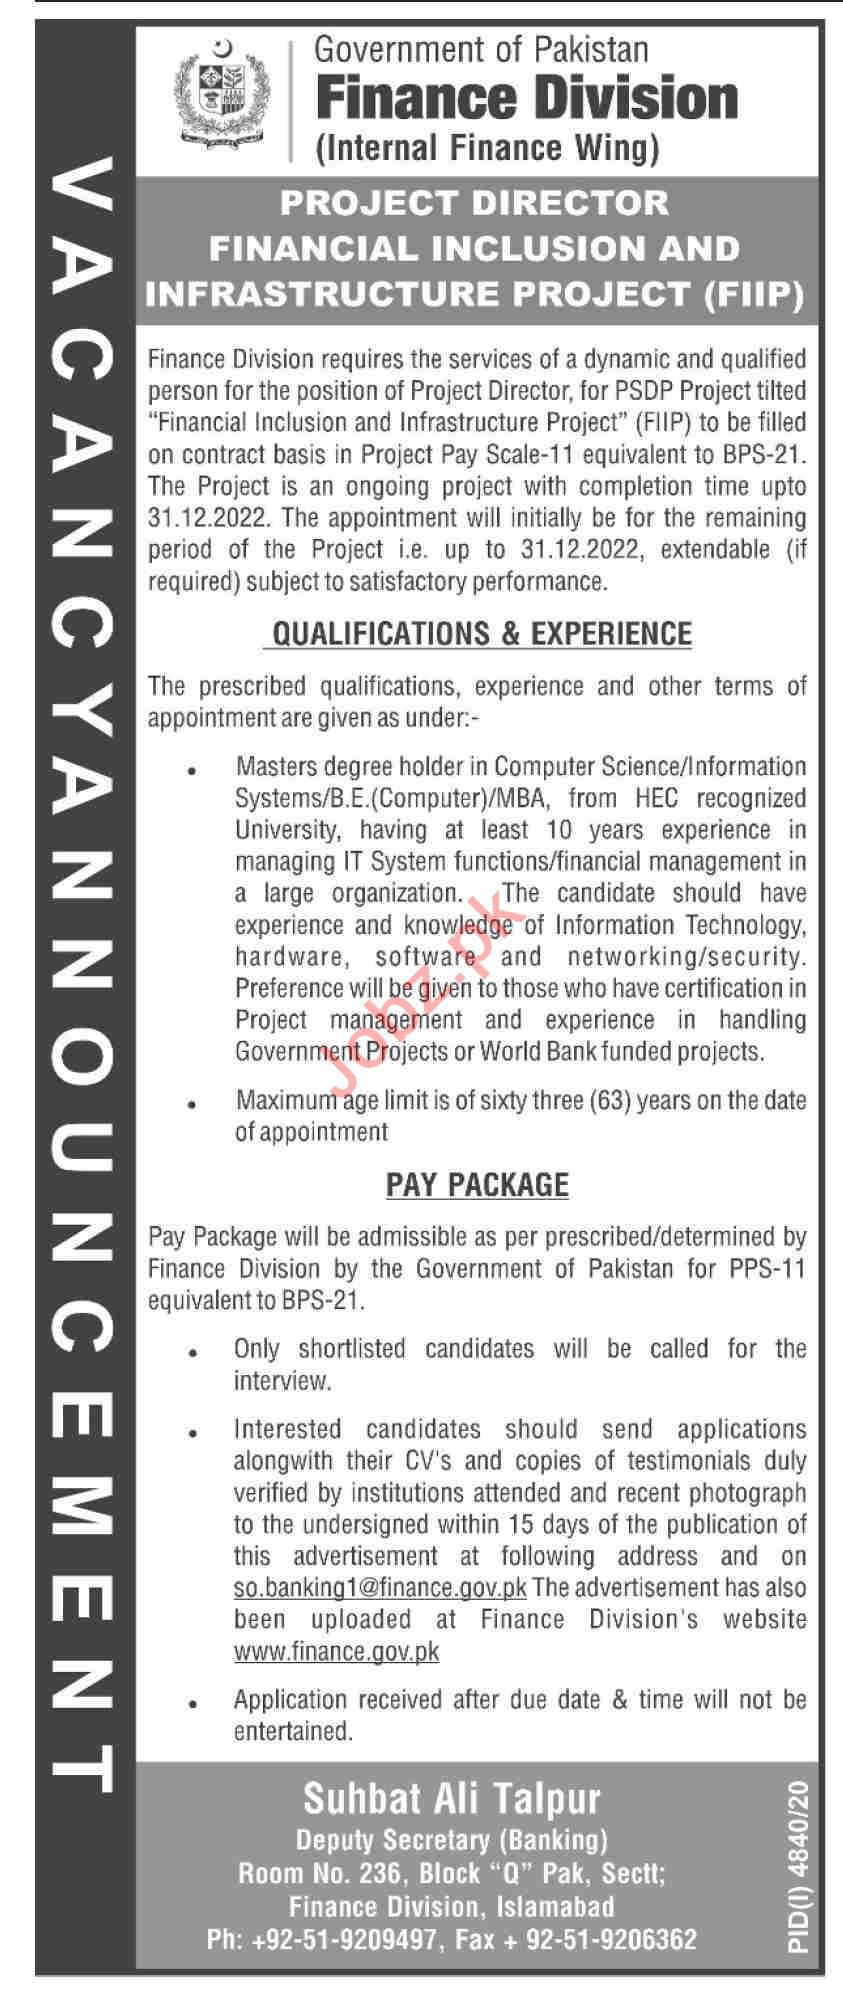 Finance Division Islamabad Jobs 2021 for Project Director